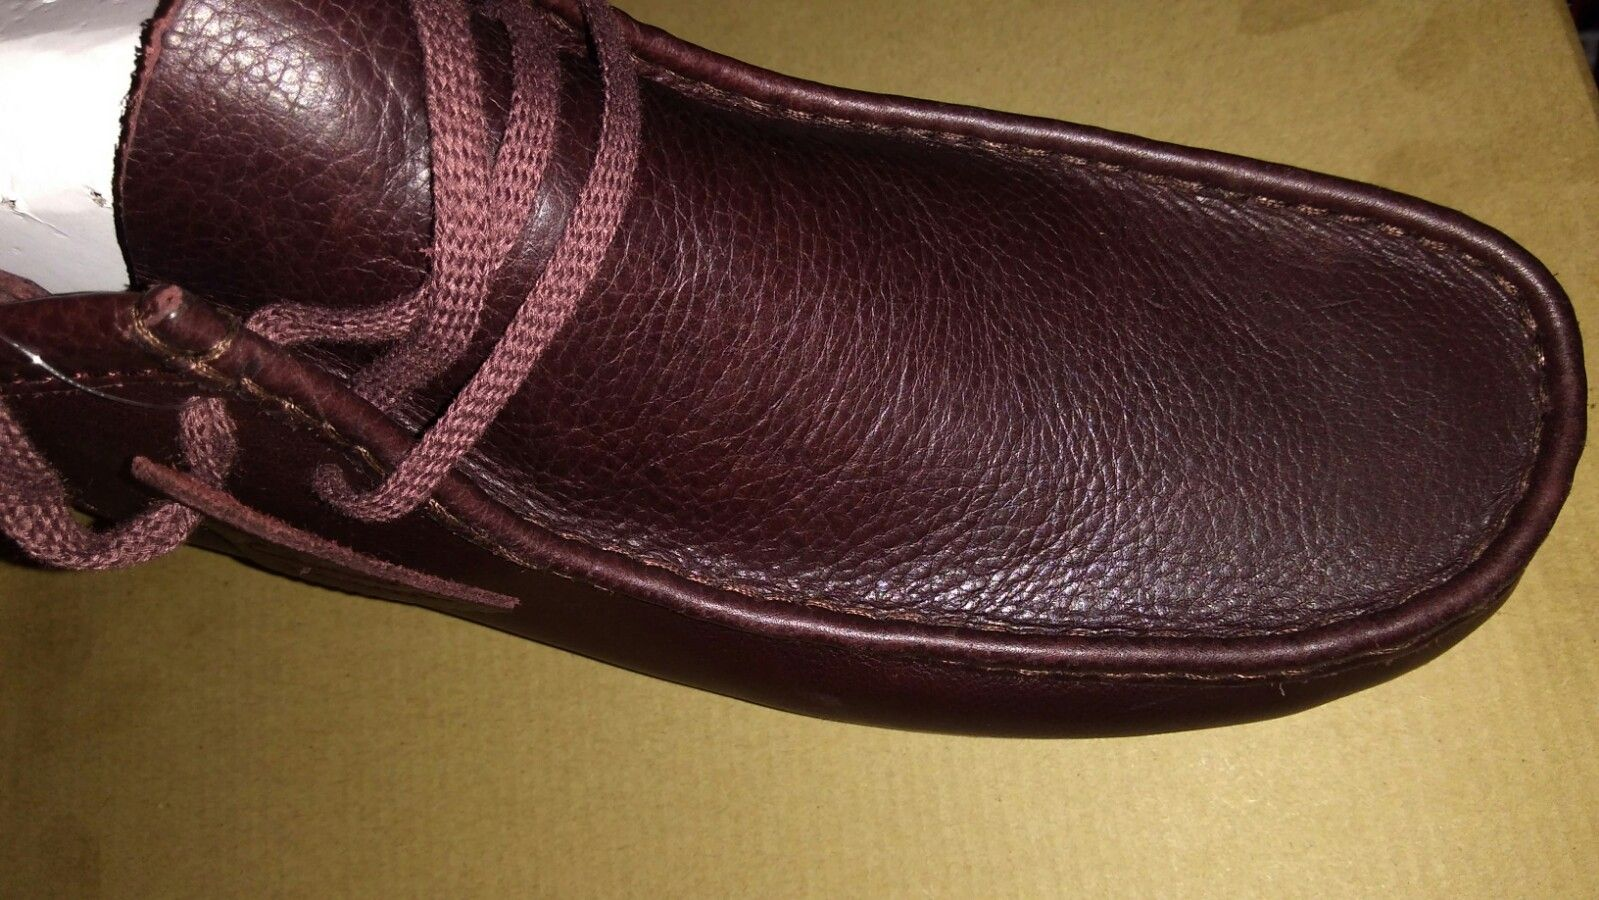 #Top part of #Wallabees is #splitgrain and the rest is #fullgrainleather by #ClarksUSA